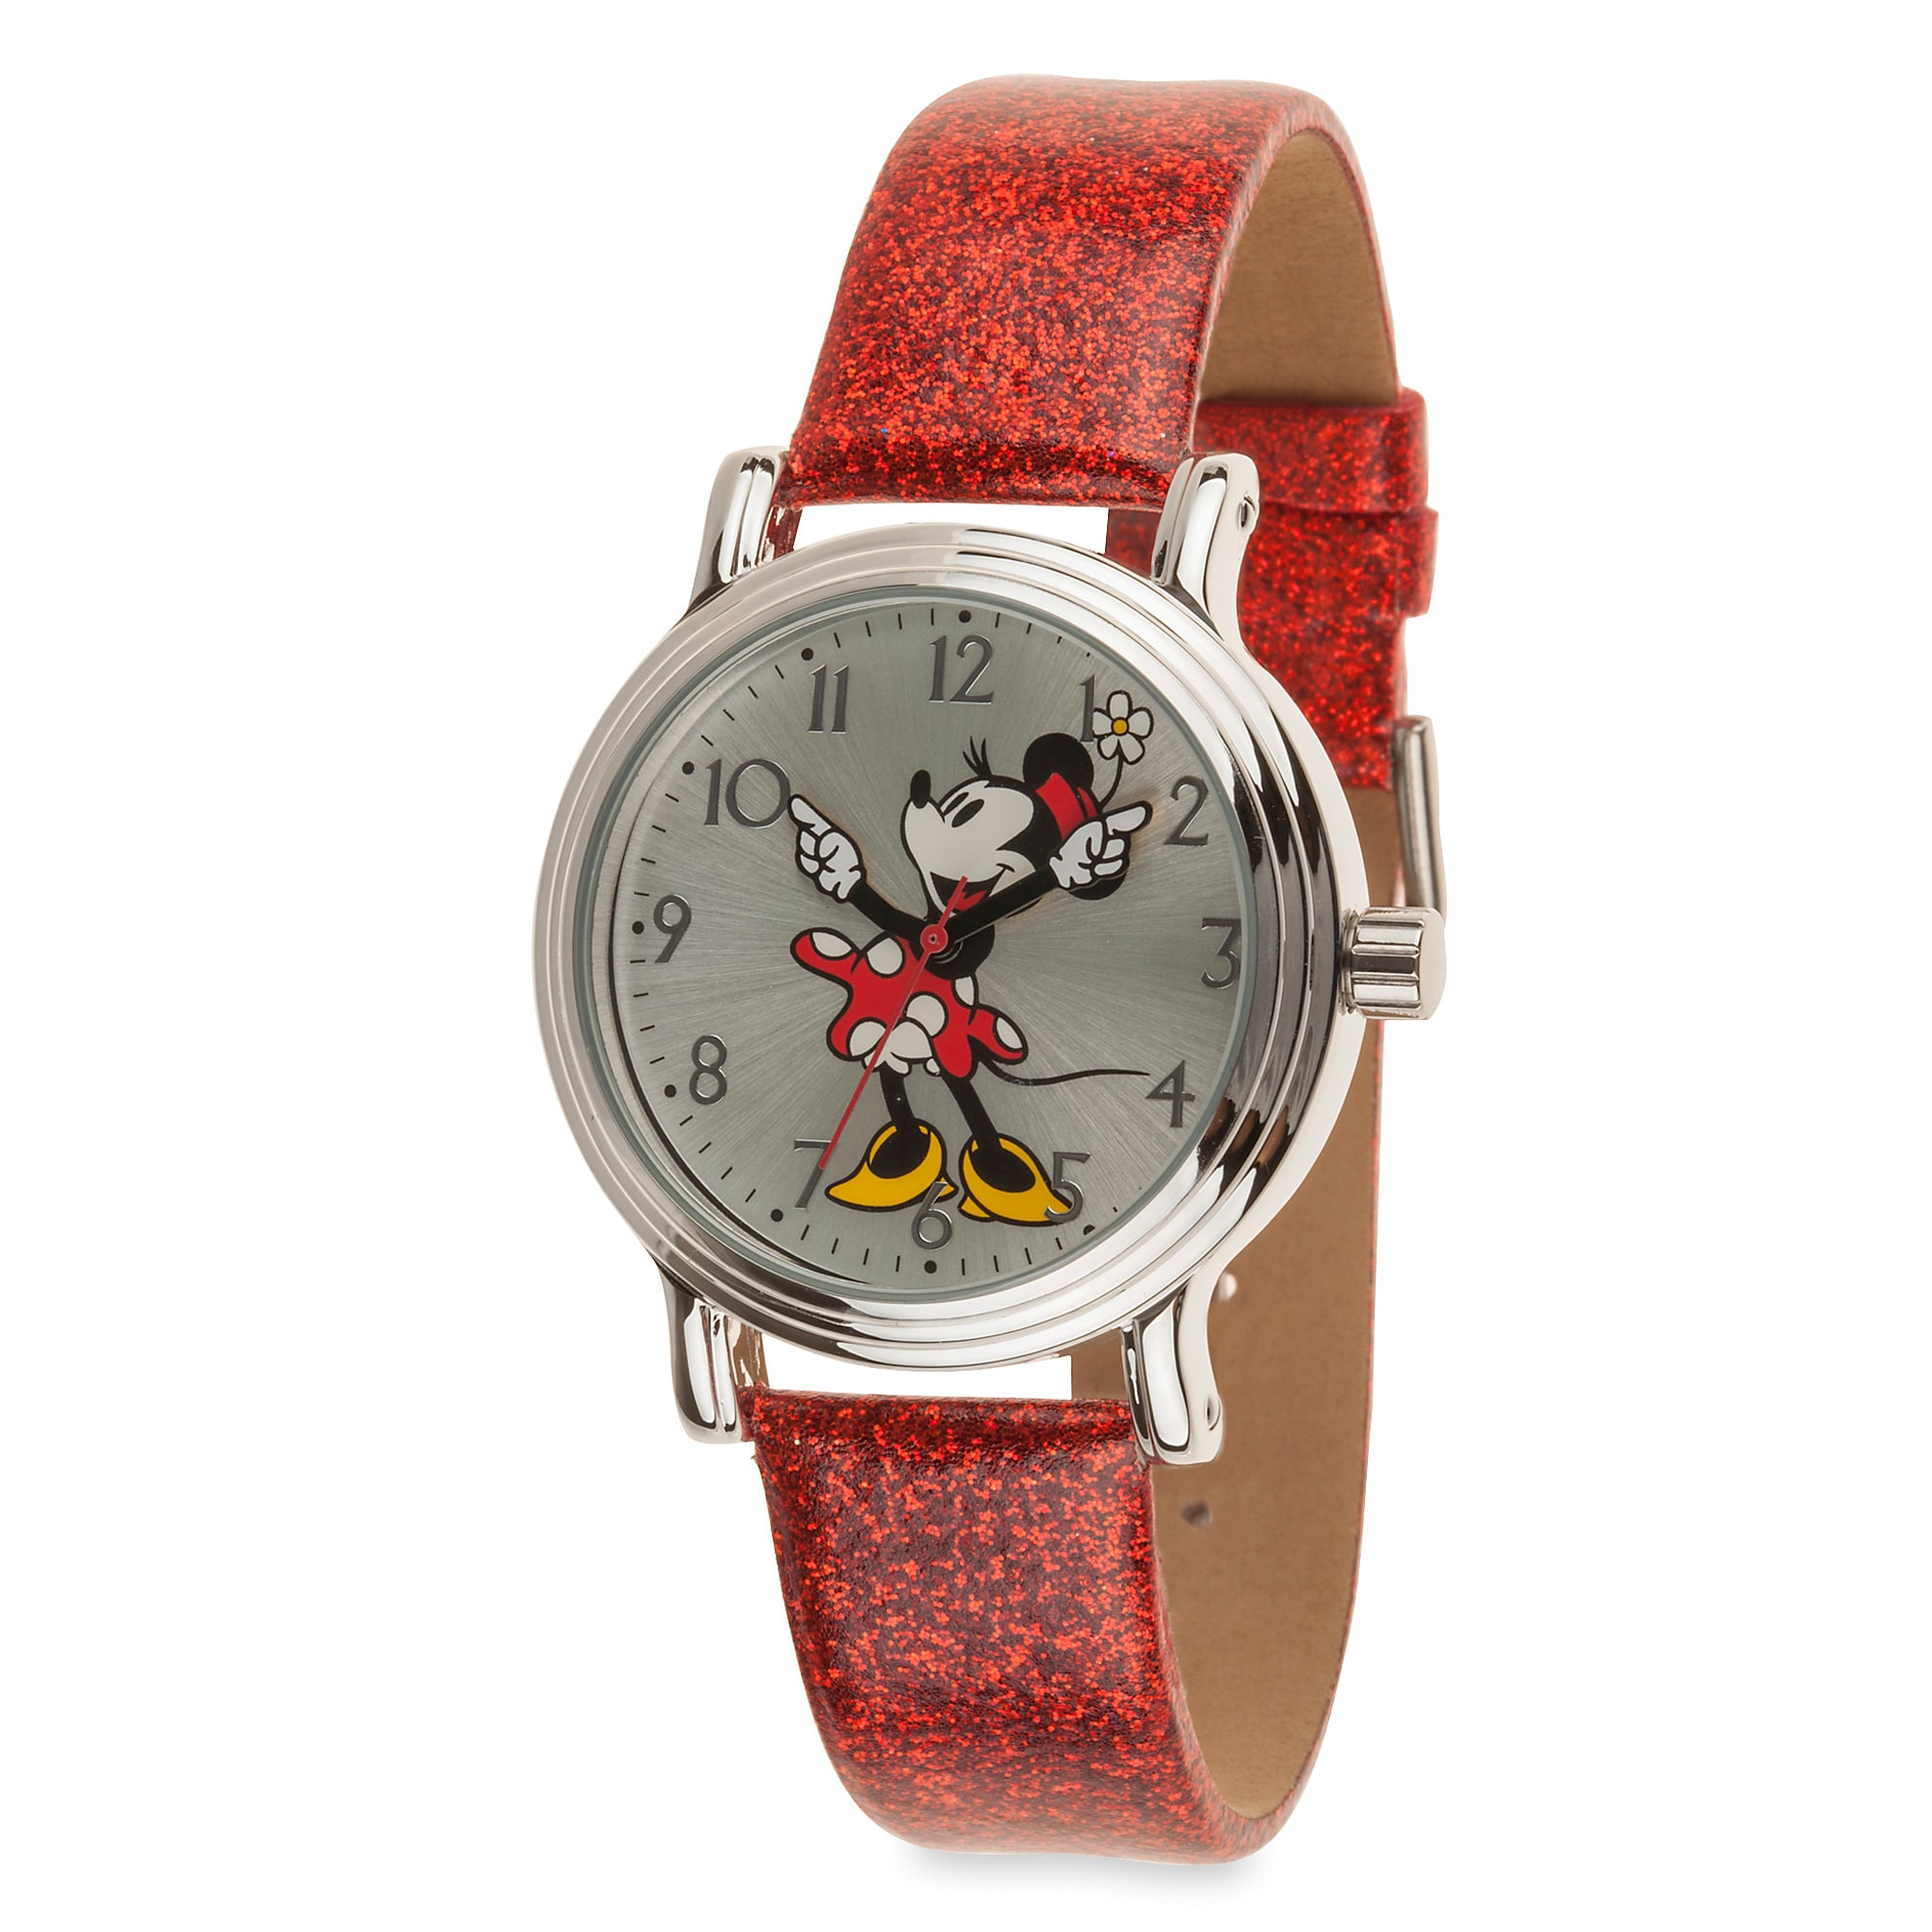 com zm leather alpine model watch military s force swiss gemnation men red watches at